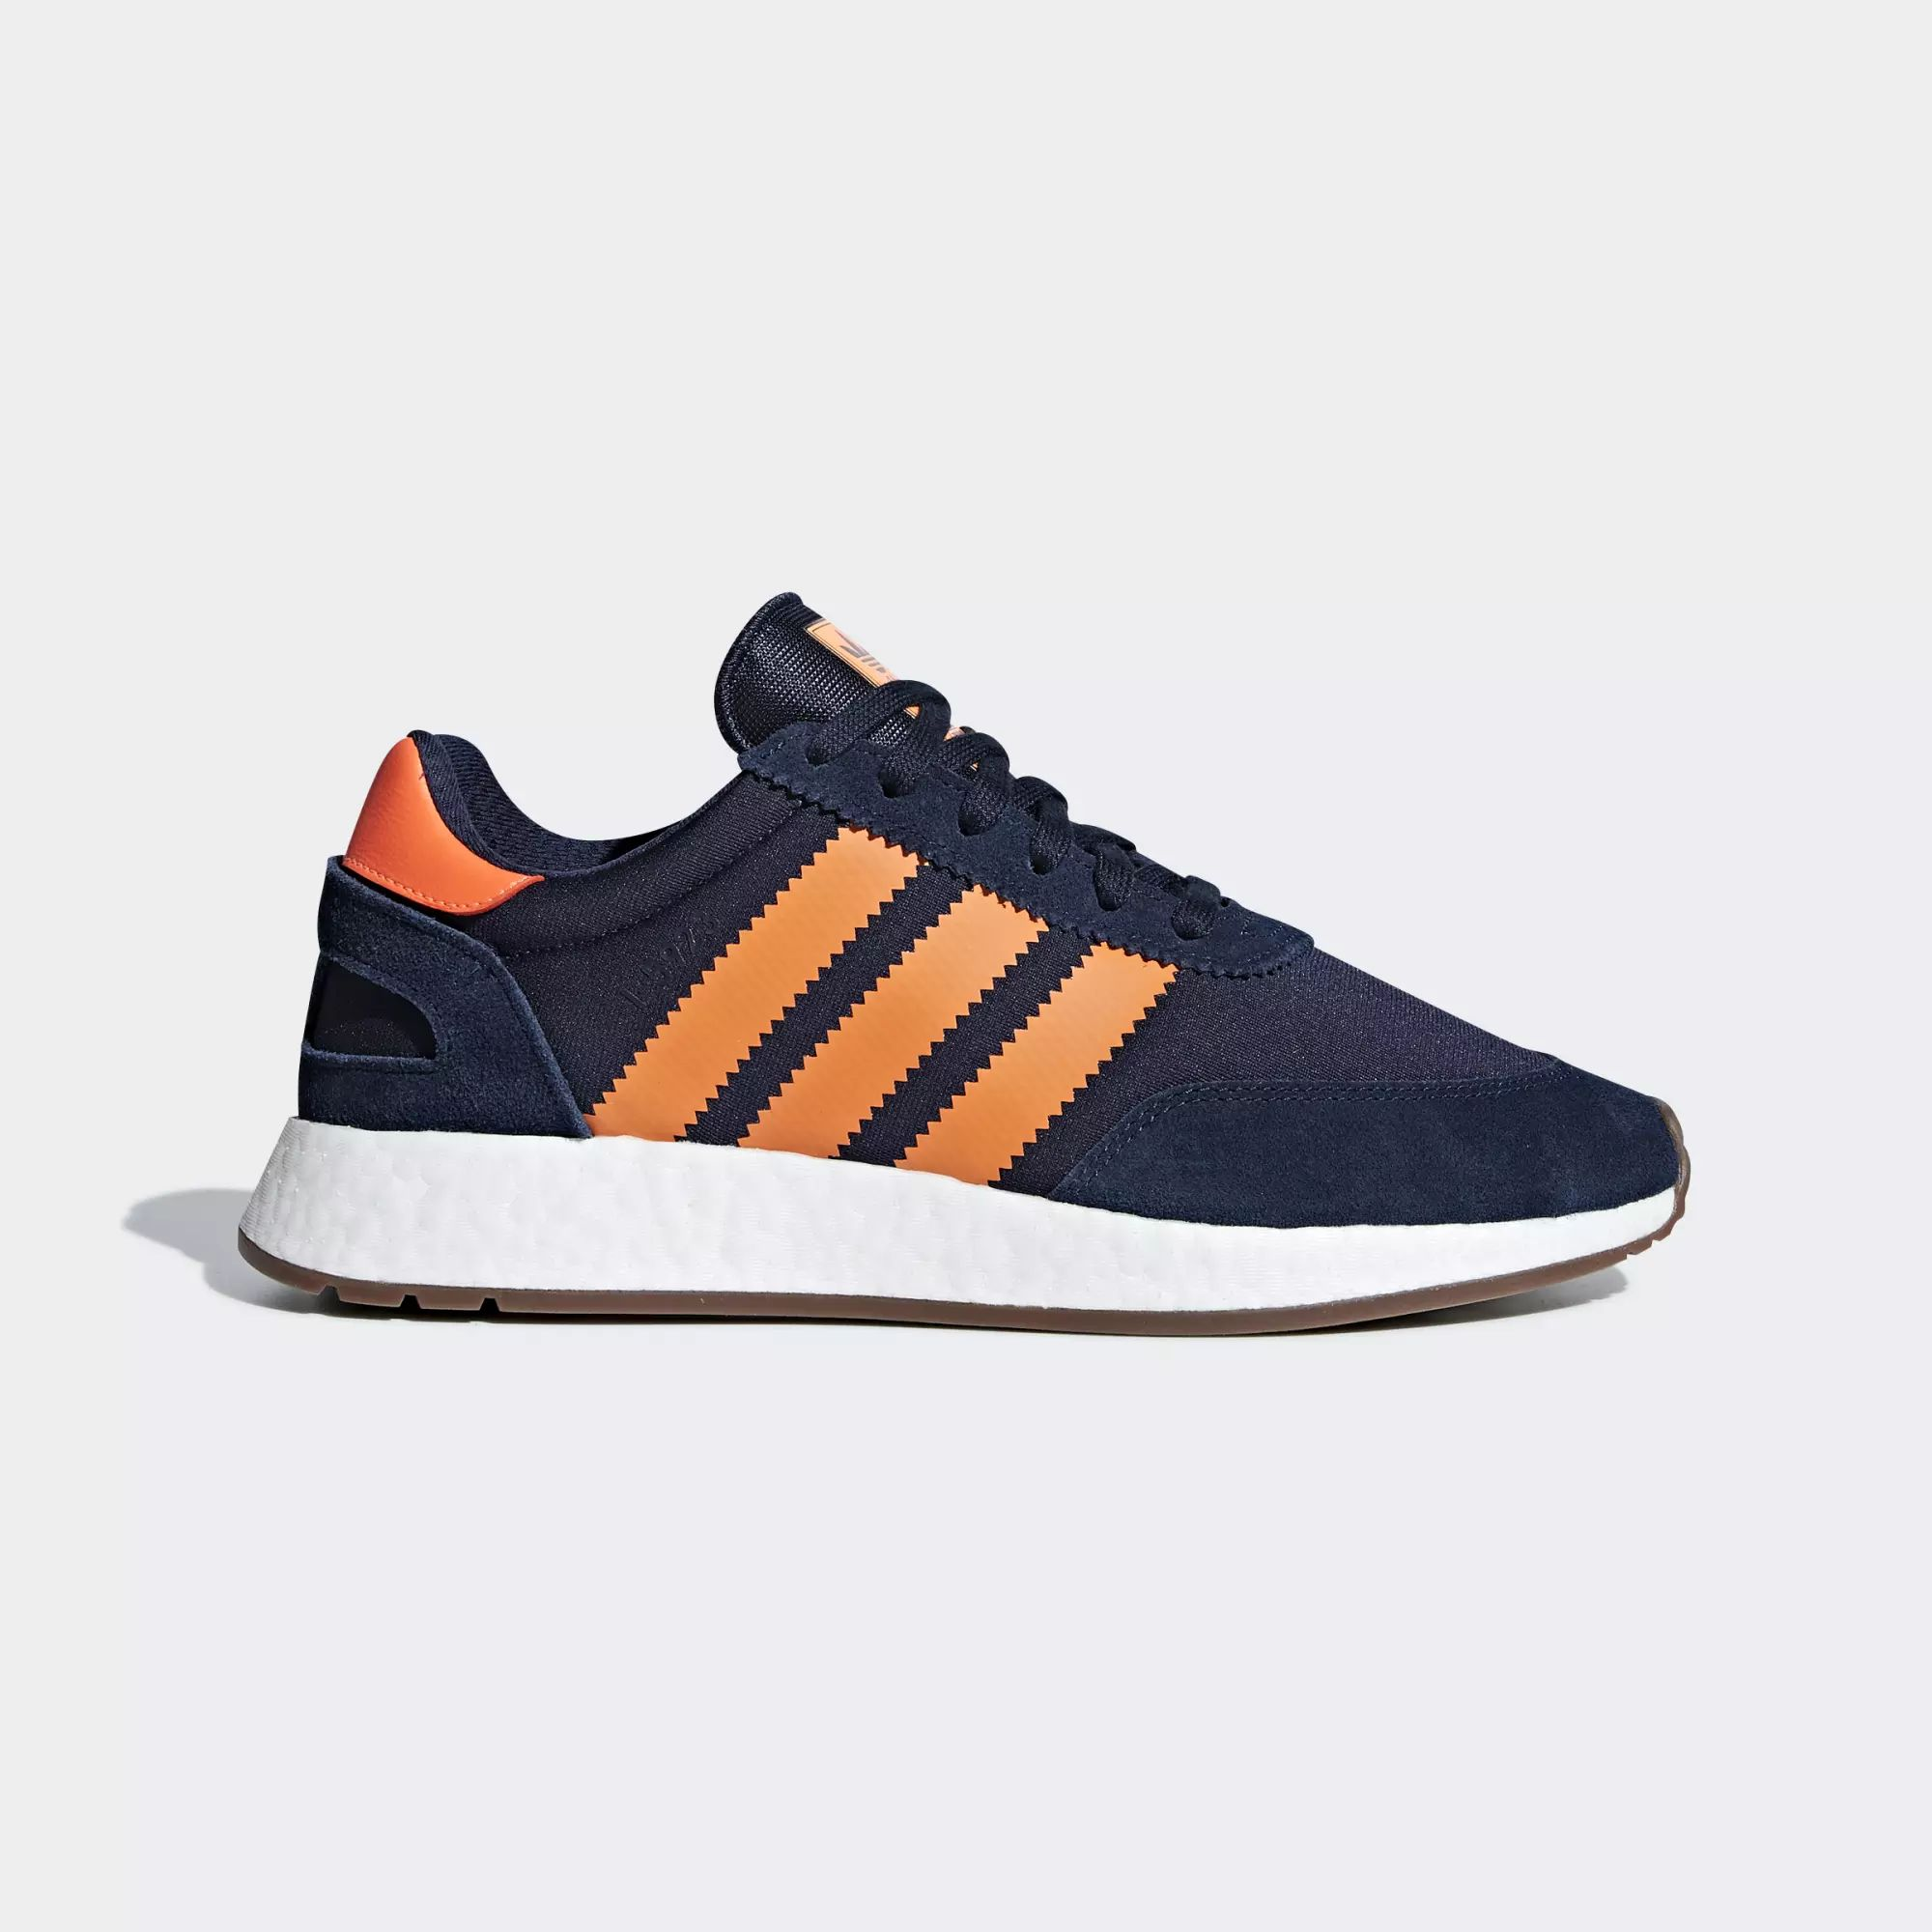 Adidas I-5923 Shoes - Collegiate Navy / Gum5 / Grey Five